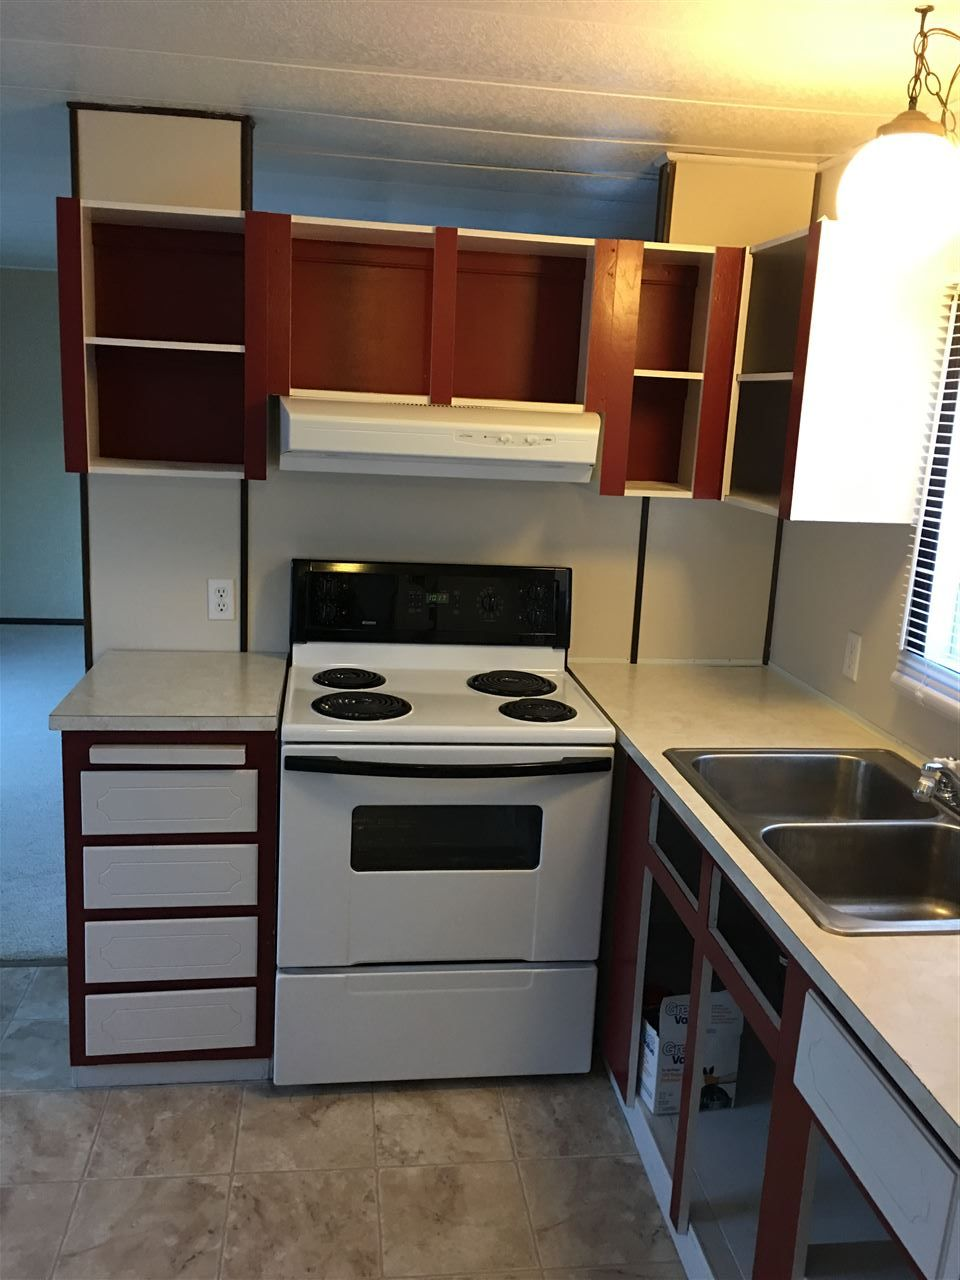 Photo 6: Photos: 10049 100A Street: Taylor Manufactured Home for sale (Fort St. John (Zone 60))  : MLS®# R2563225